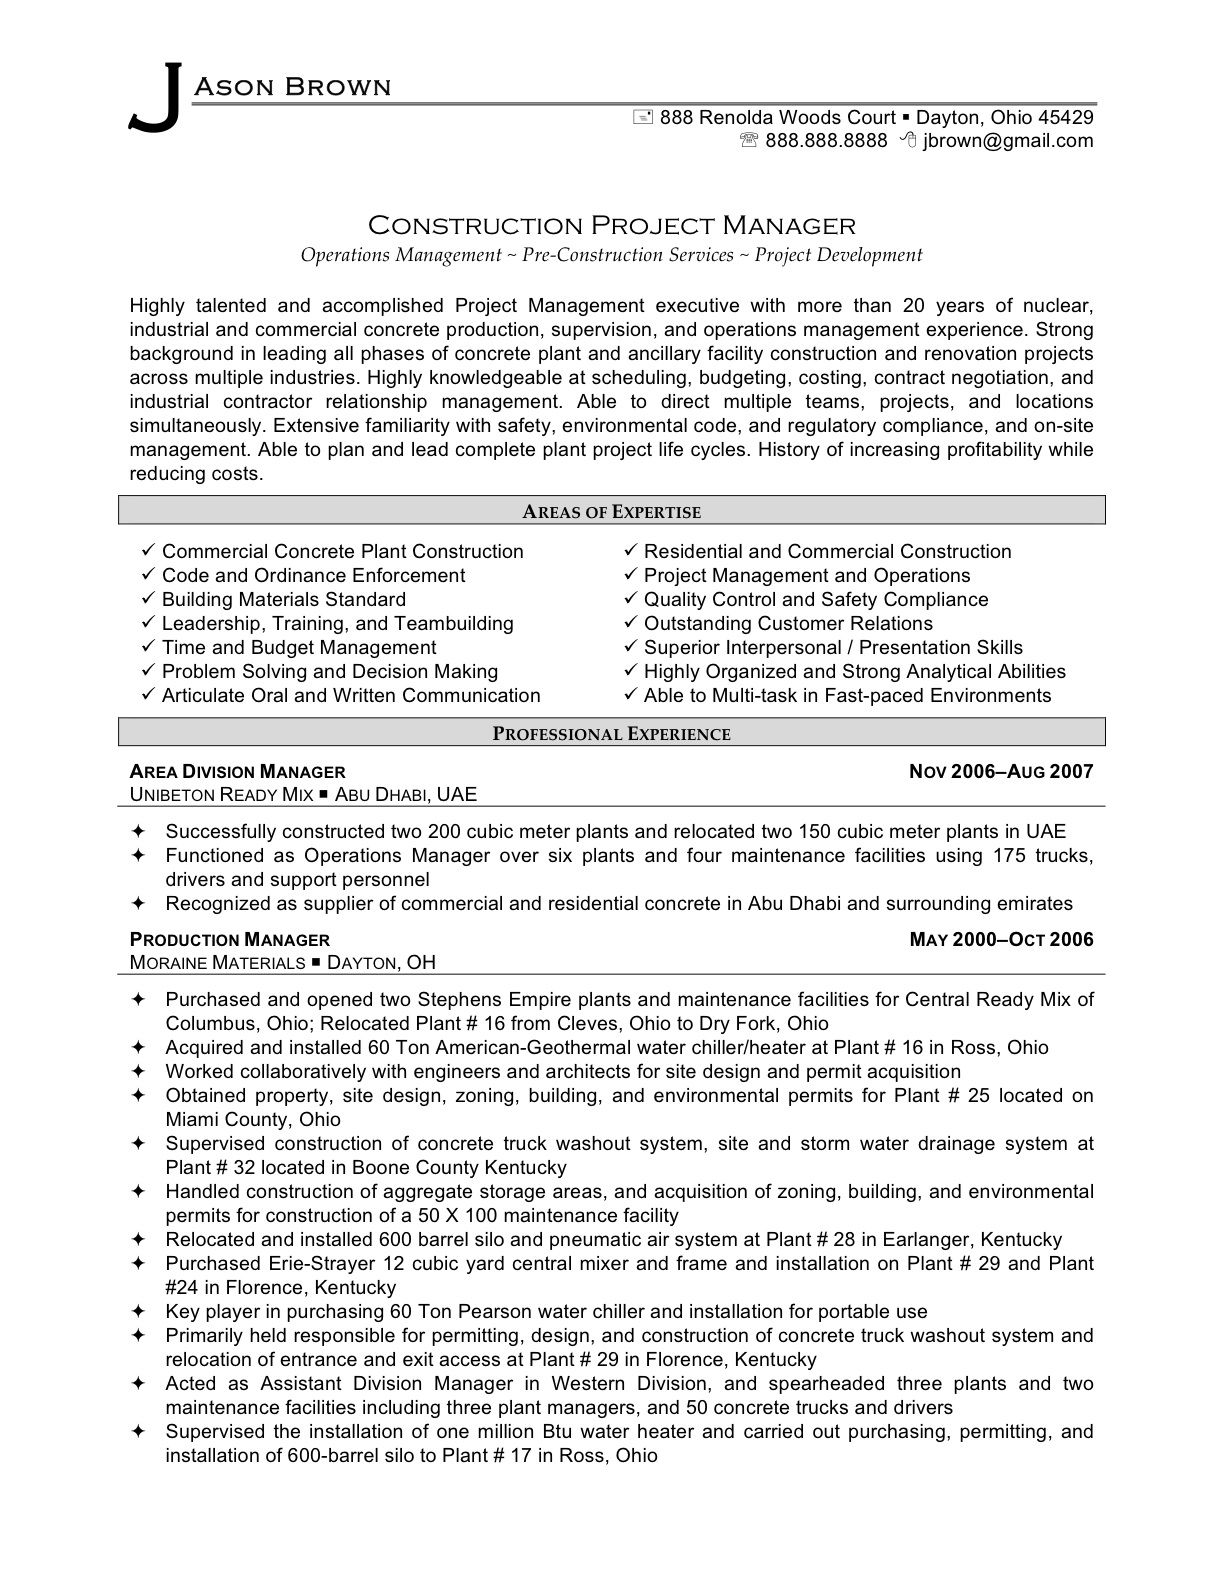 construction project manager resume templates - Construction Project Manager Resume Examples